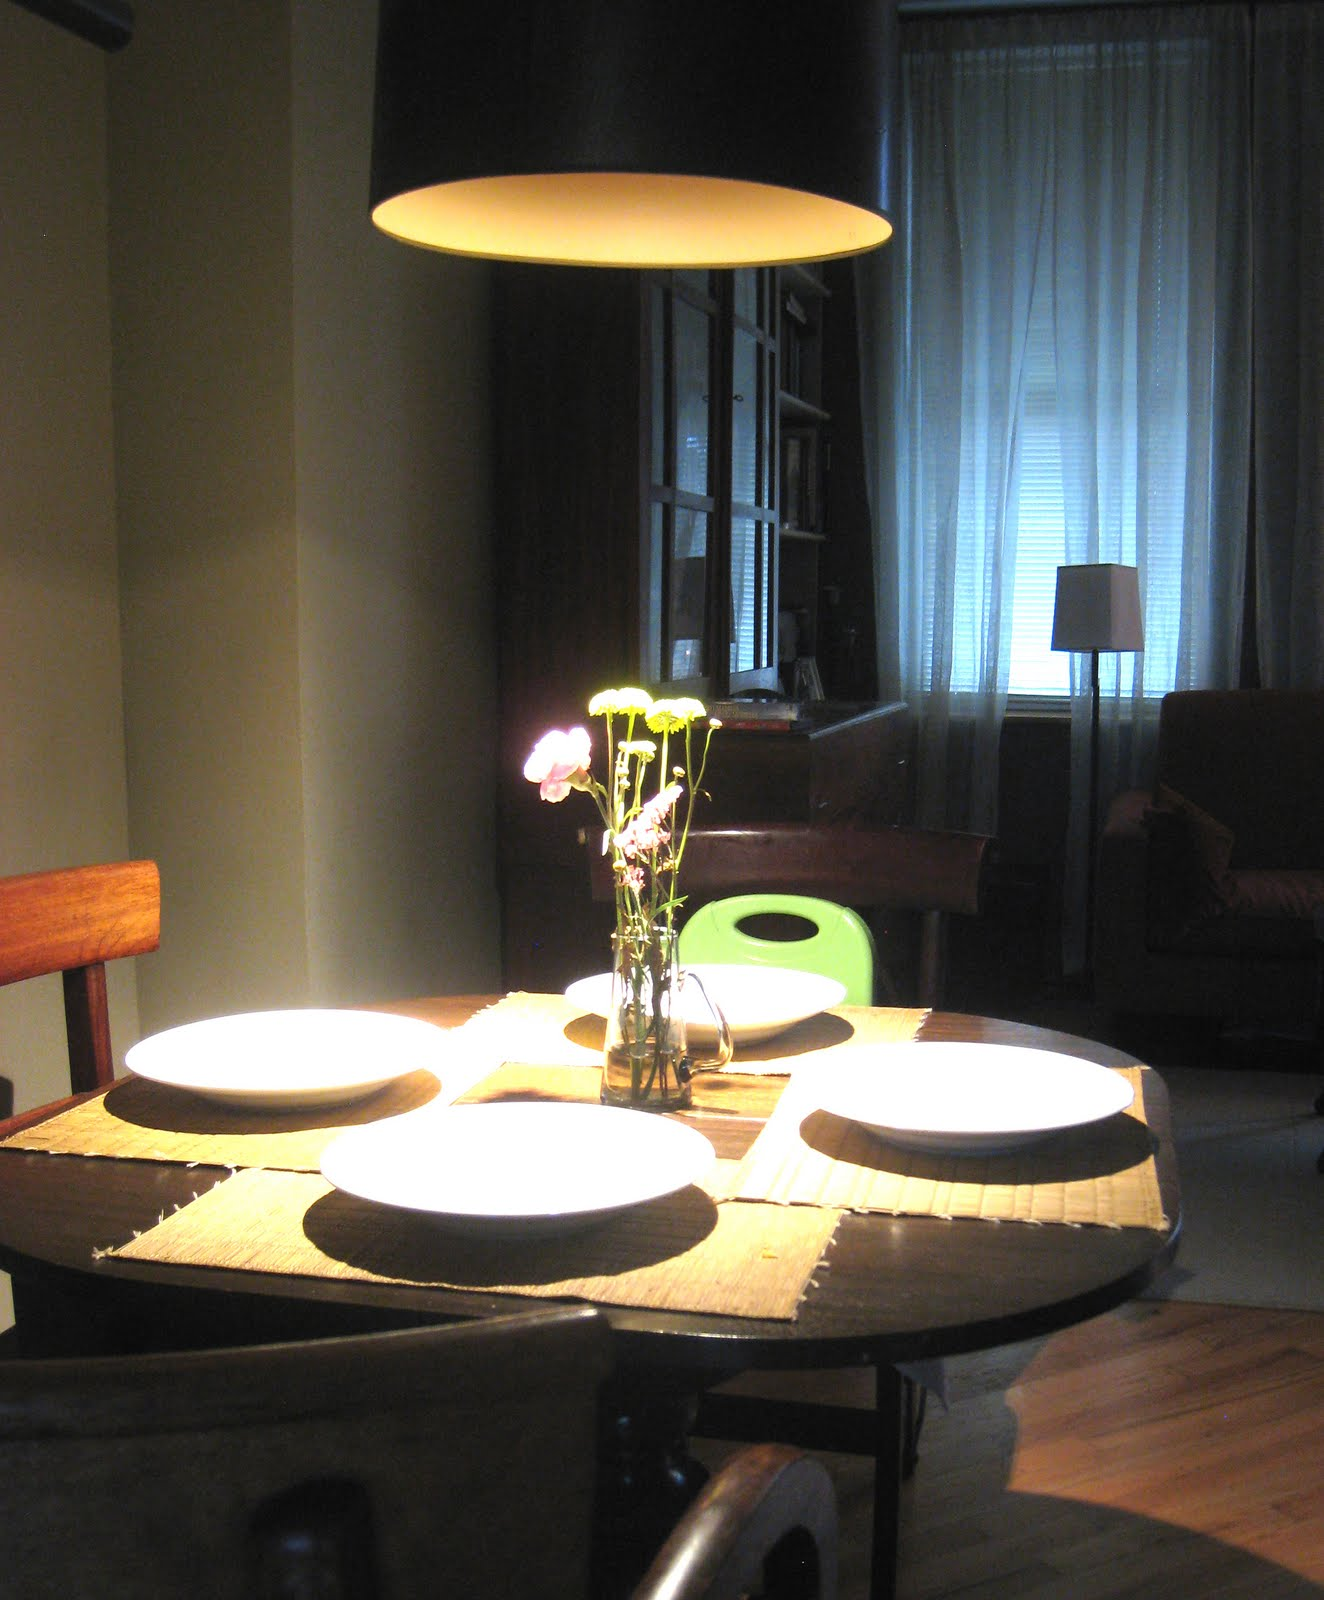 Mowery marsh architects llc dining table pendant for Over dining table pendant lights